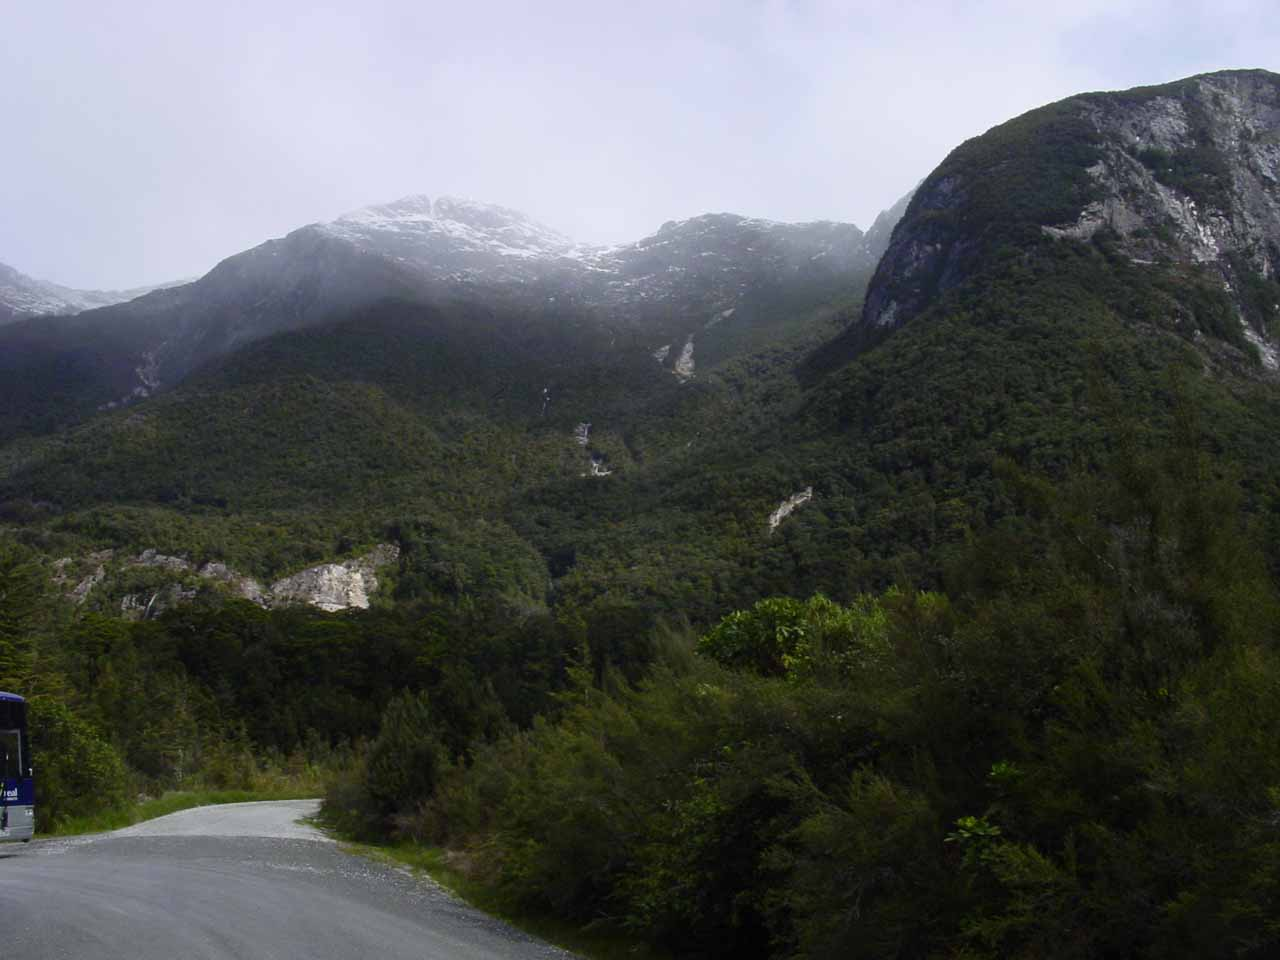 Looking back at Wilmot Pass Road just as we were about to take the boat ride back across Lake Manapouri to end our tour